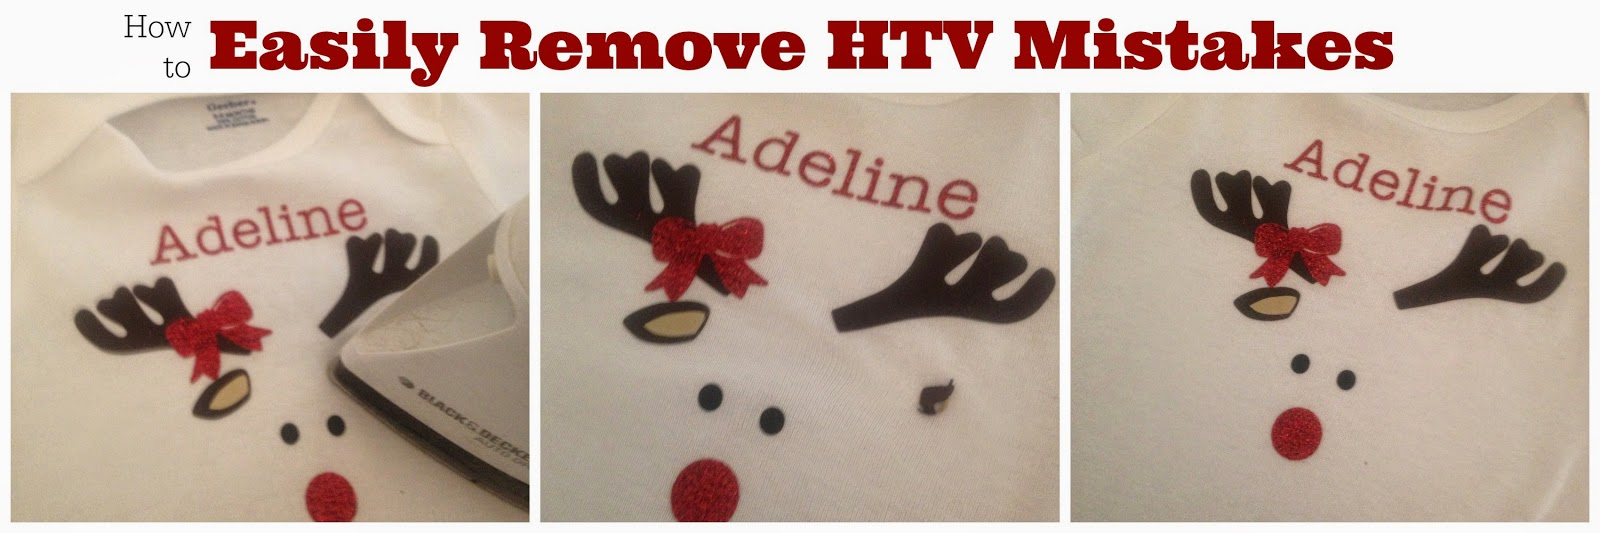 HTV mistakes, remove HTV mistakes, HTV, heat transfer vinyl